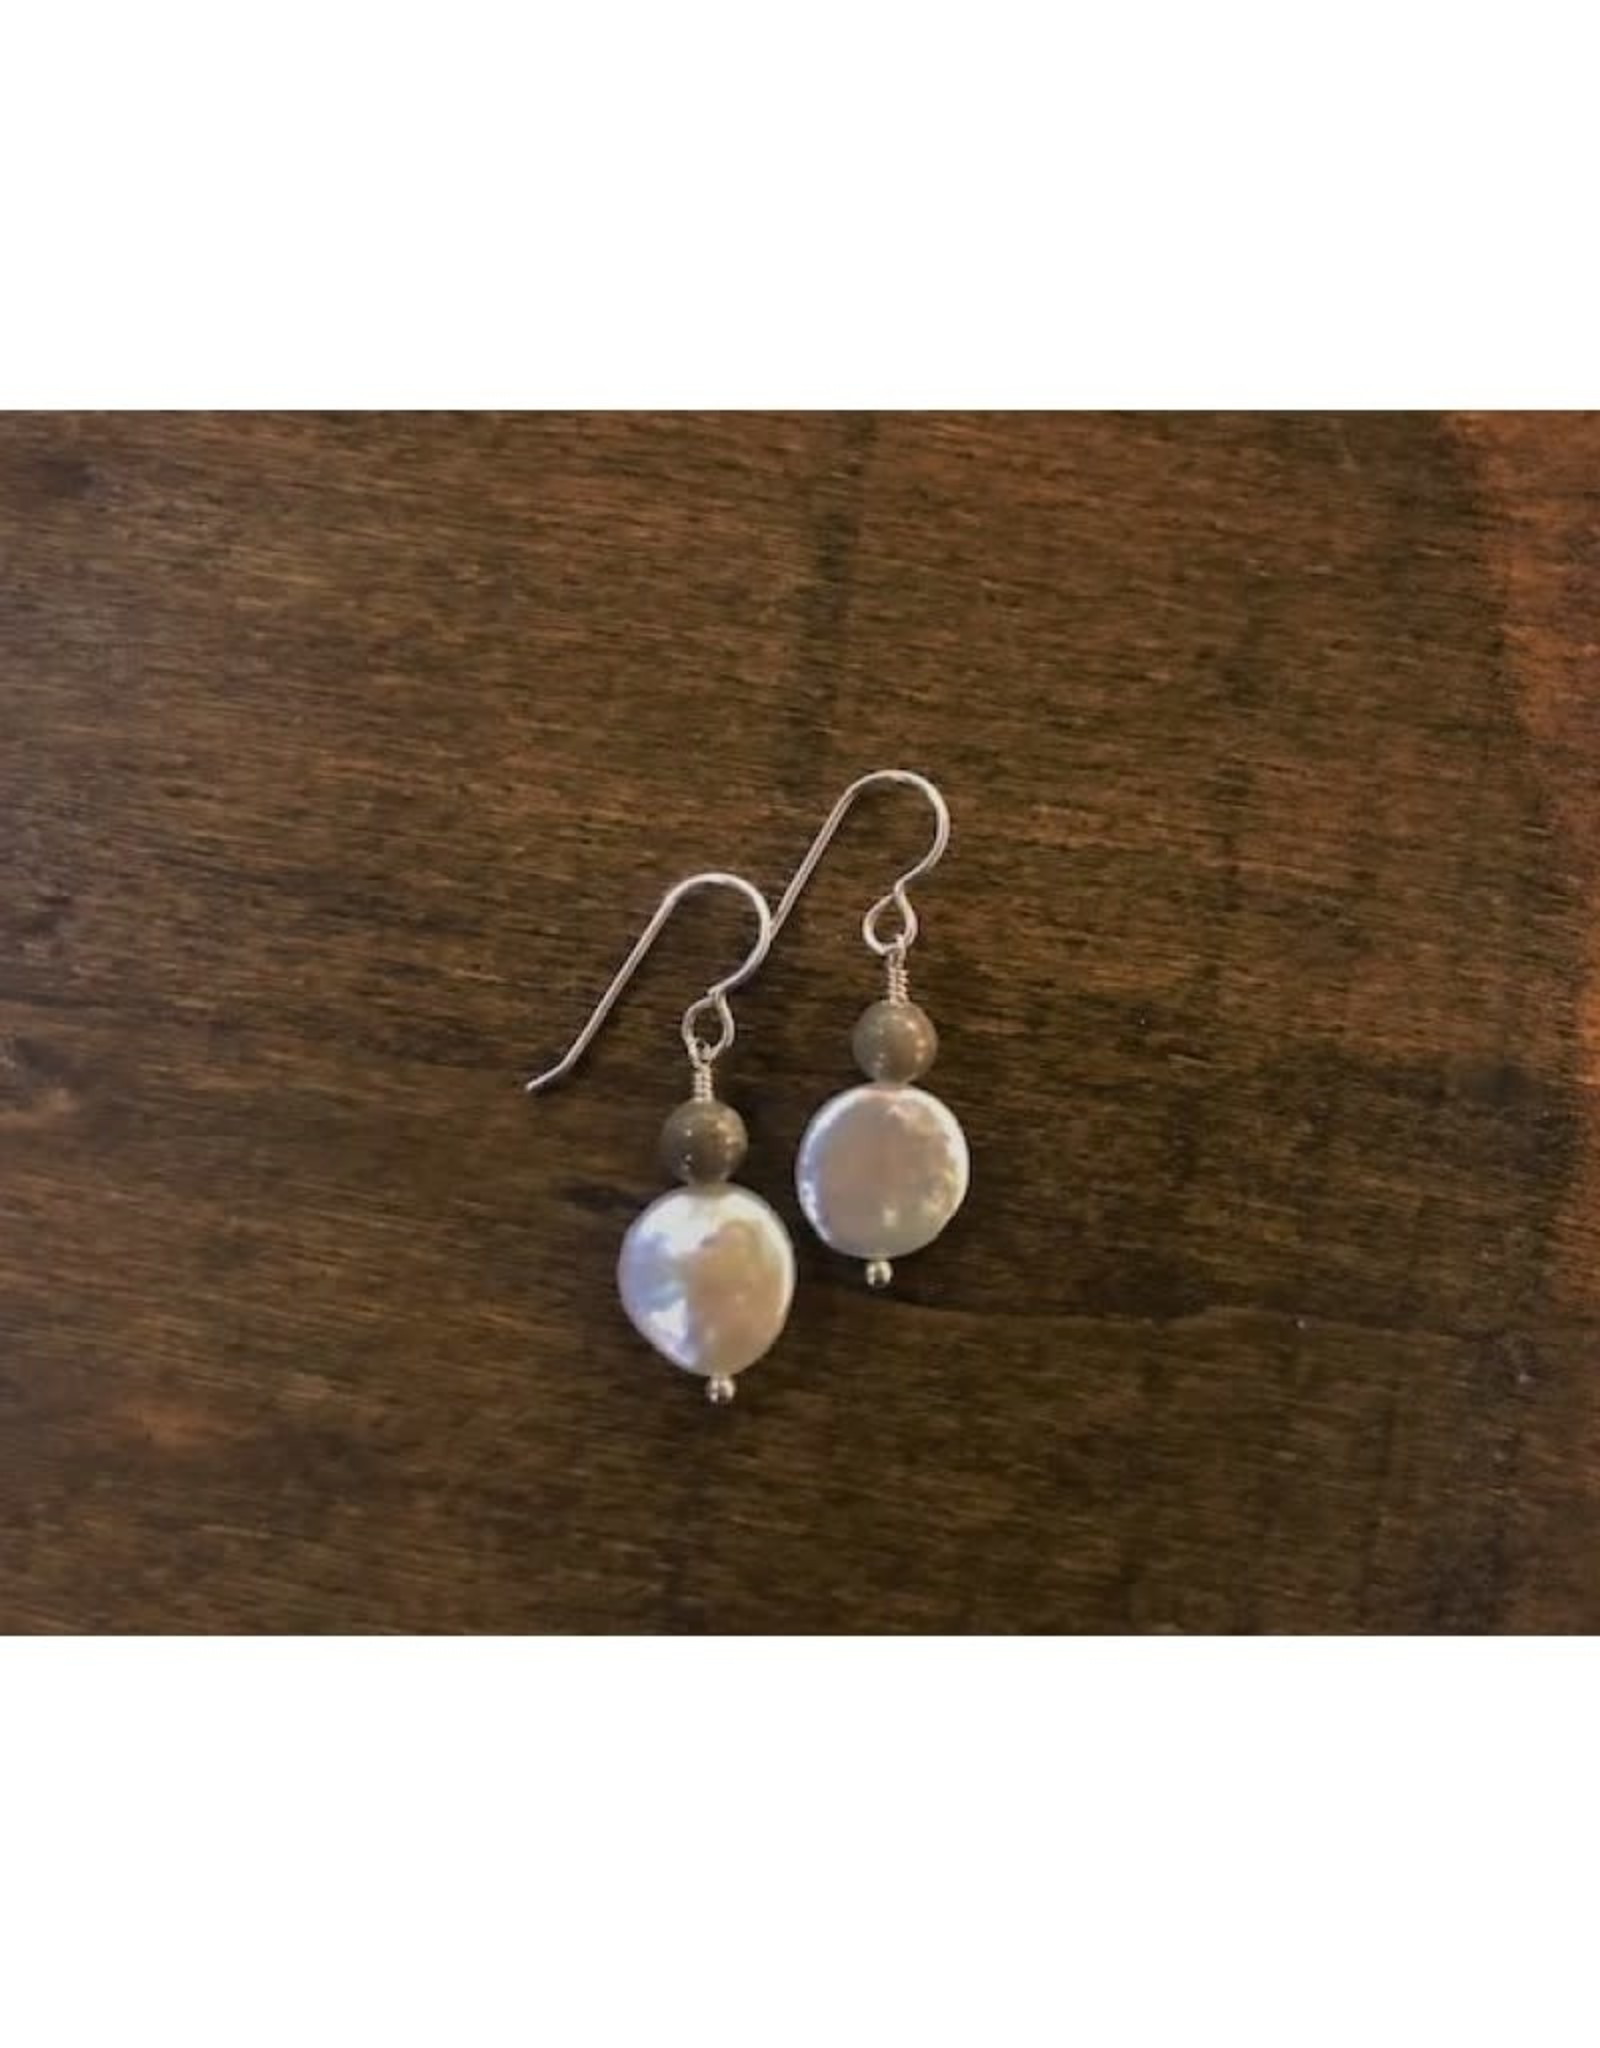 French Hook Earrings - Petoskey & Pearl Round